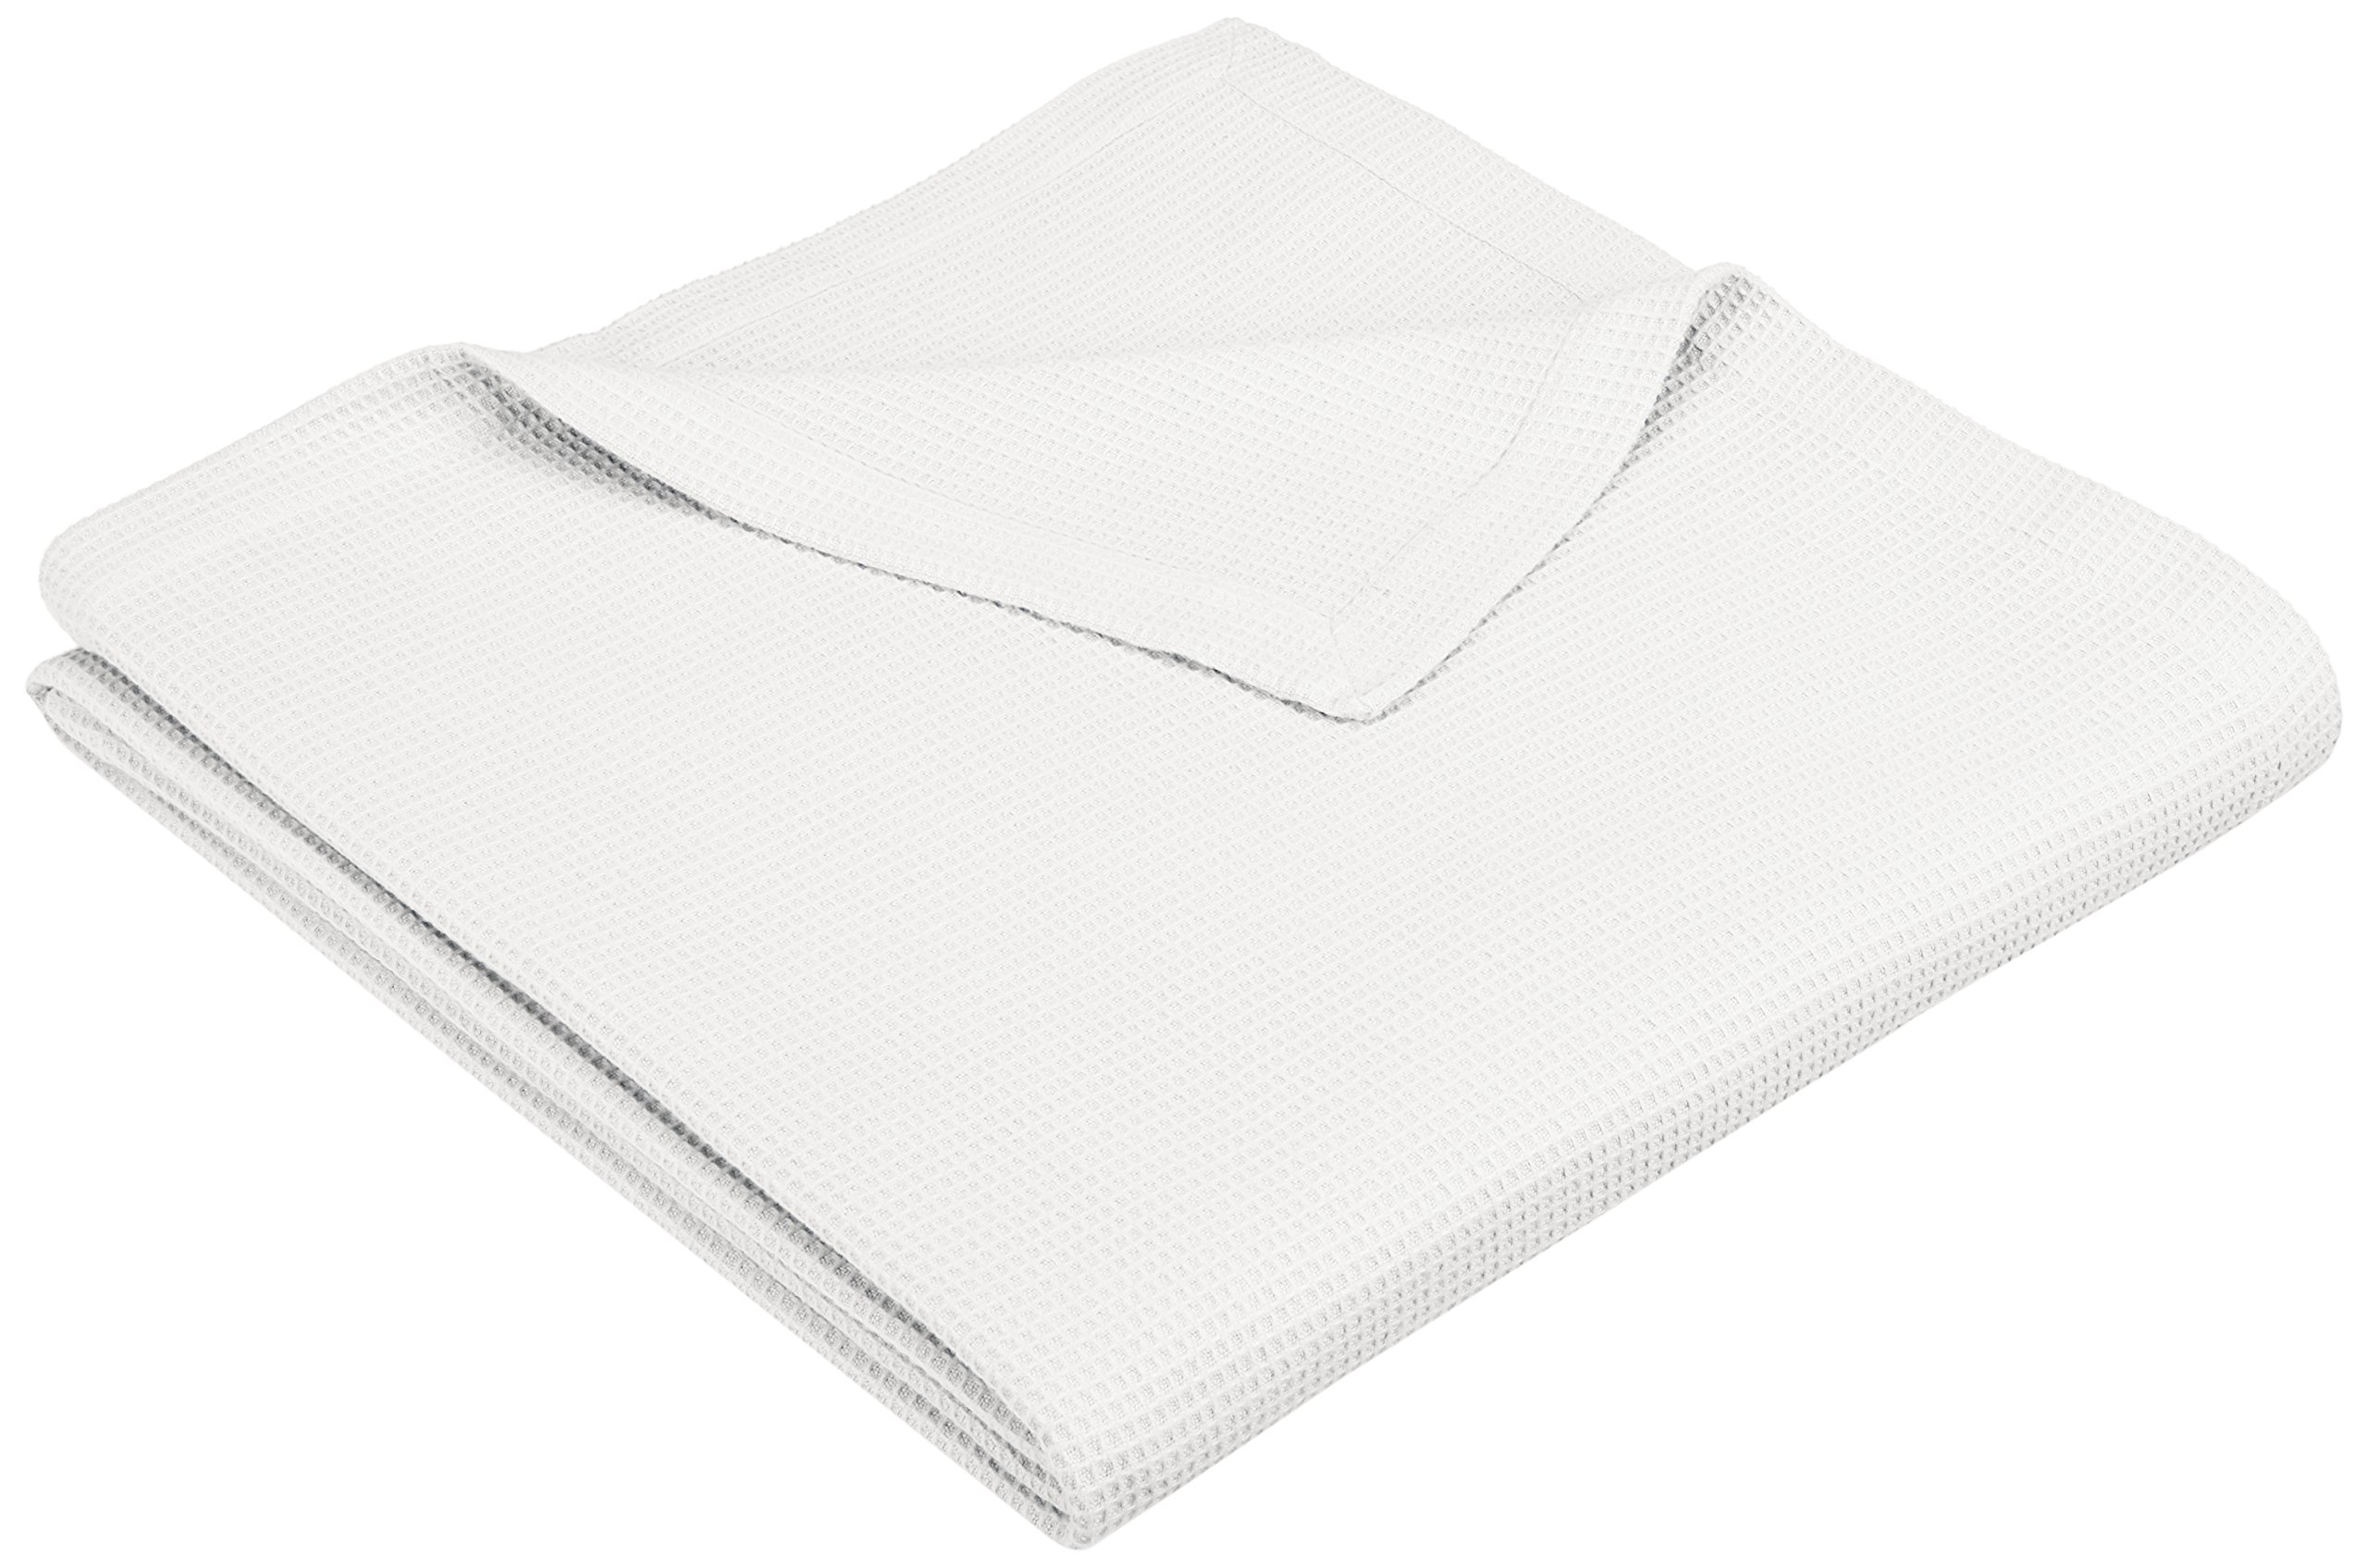 Pinzon Cotton Waffle Weave Blanket - Full/Queen, White - Soft Full/Queen blanket offers an extra layer of warmth Made with brushed cotton for extra softness All-over waffle weave for added dimension and texture - blankets-throws, bedroom-sheets-comforters, bedroom - 81qc0tDLKbL -